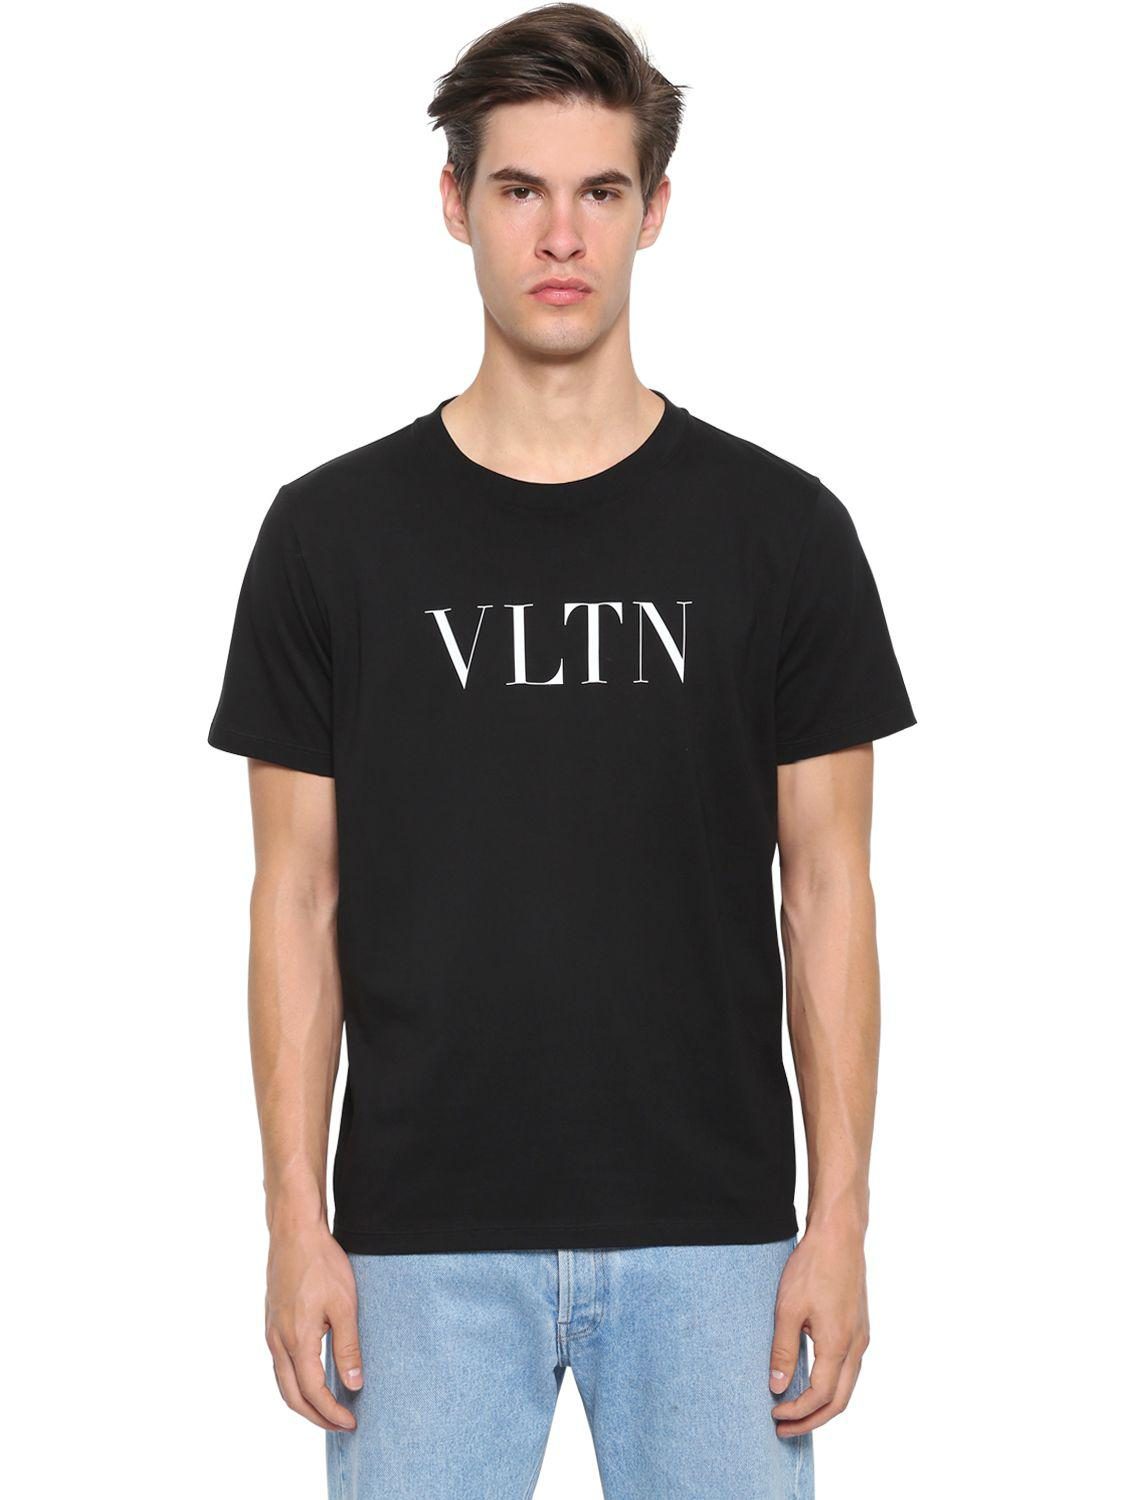 White Punk Star T-Shirt Valentino Cheap Price For Sale For Cheap Discount Vt26HhO8d